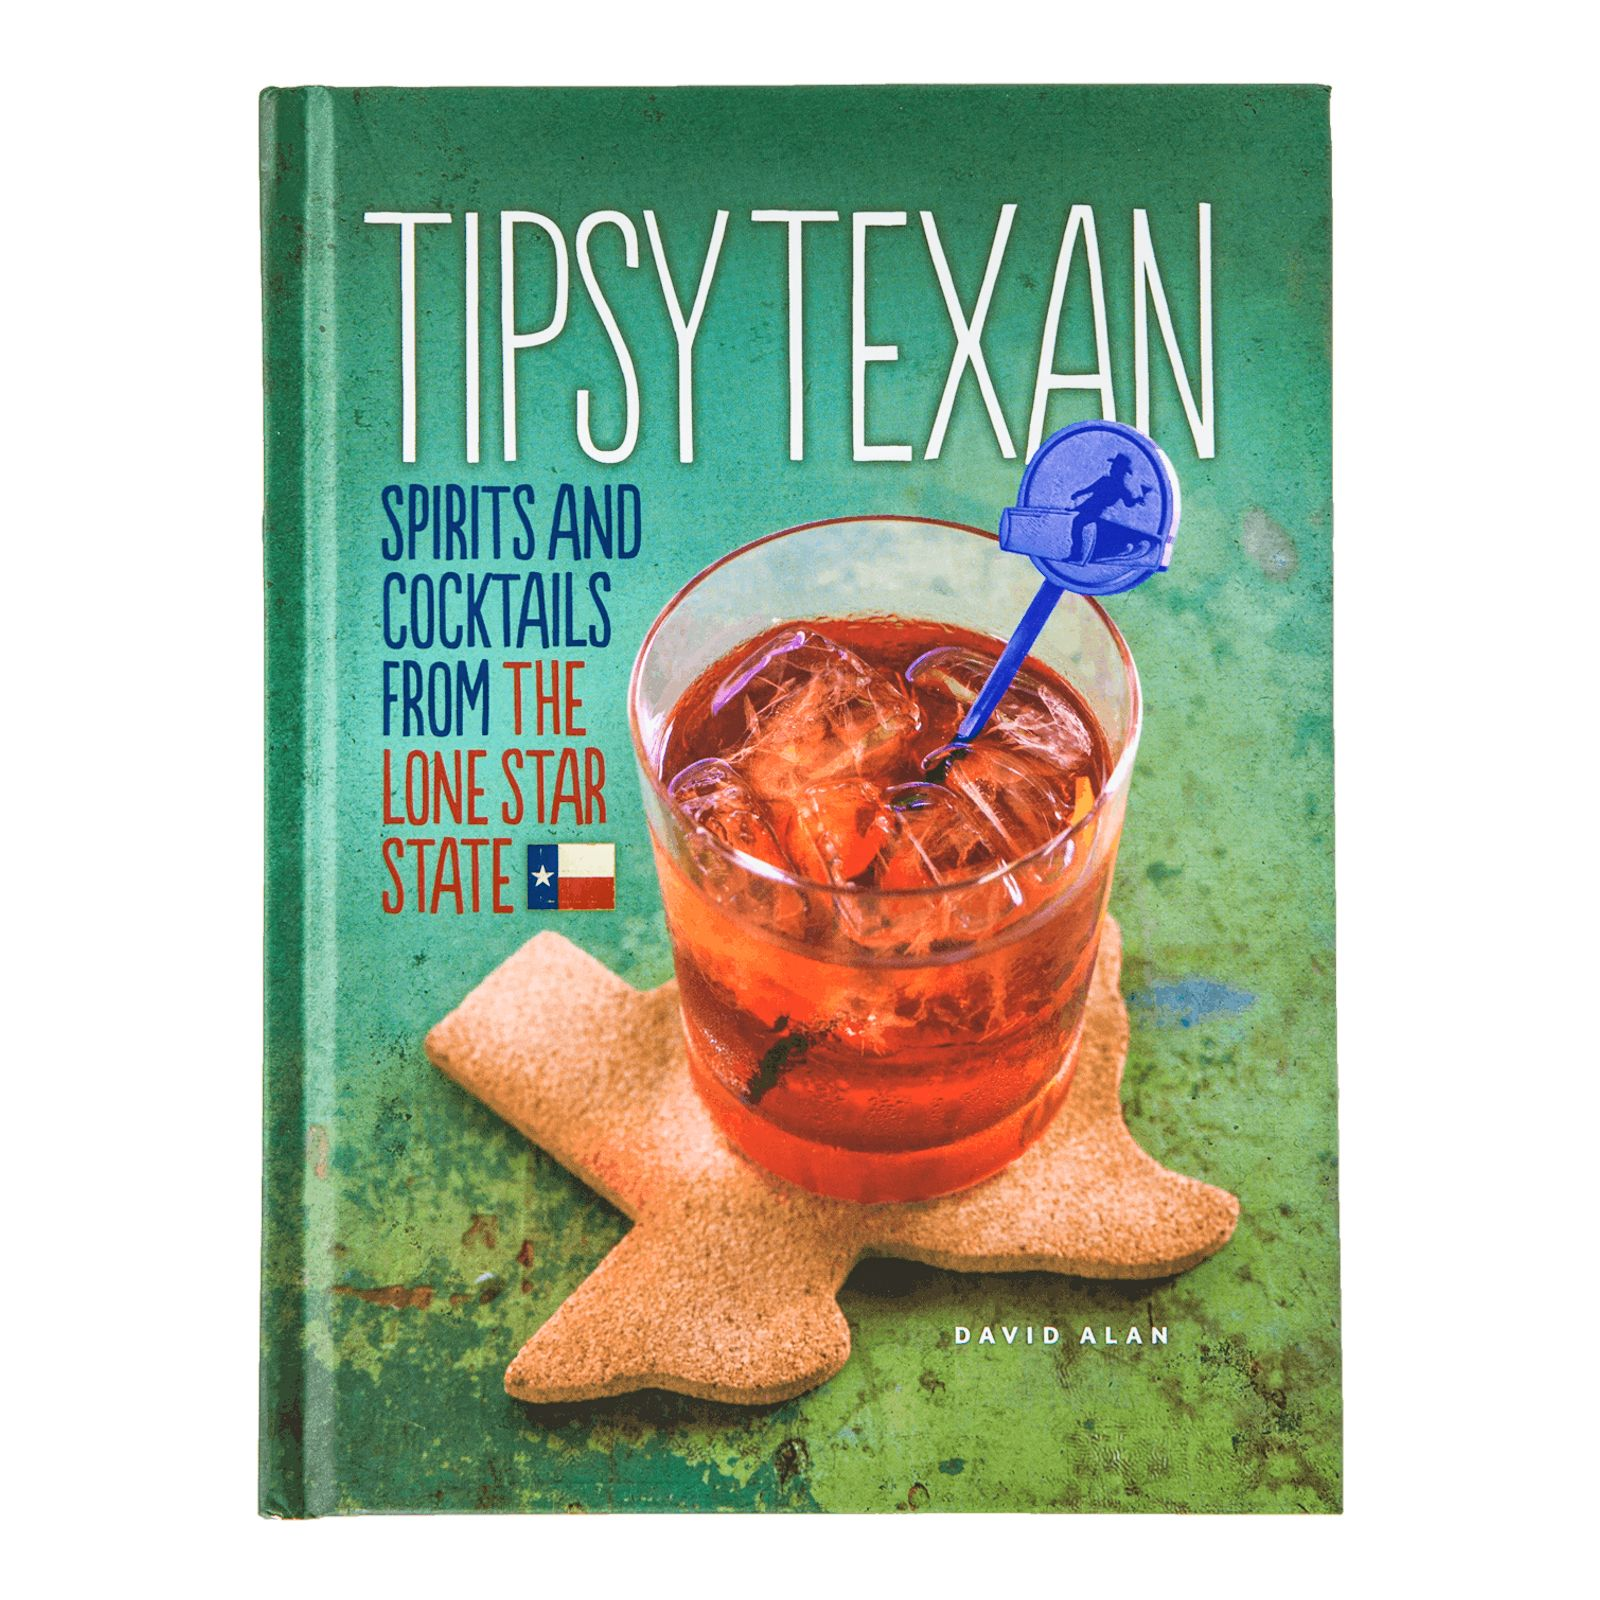 Tipsy Texan: Spirits and Cocktails from the Lone Star State